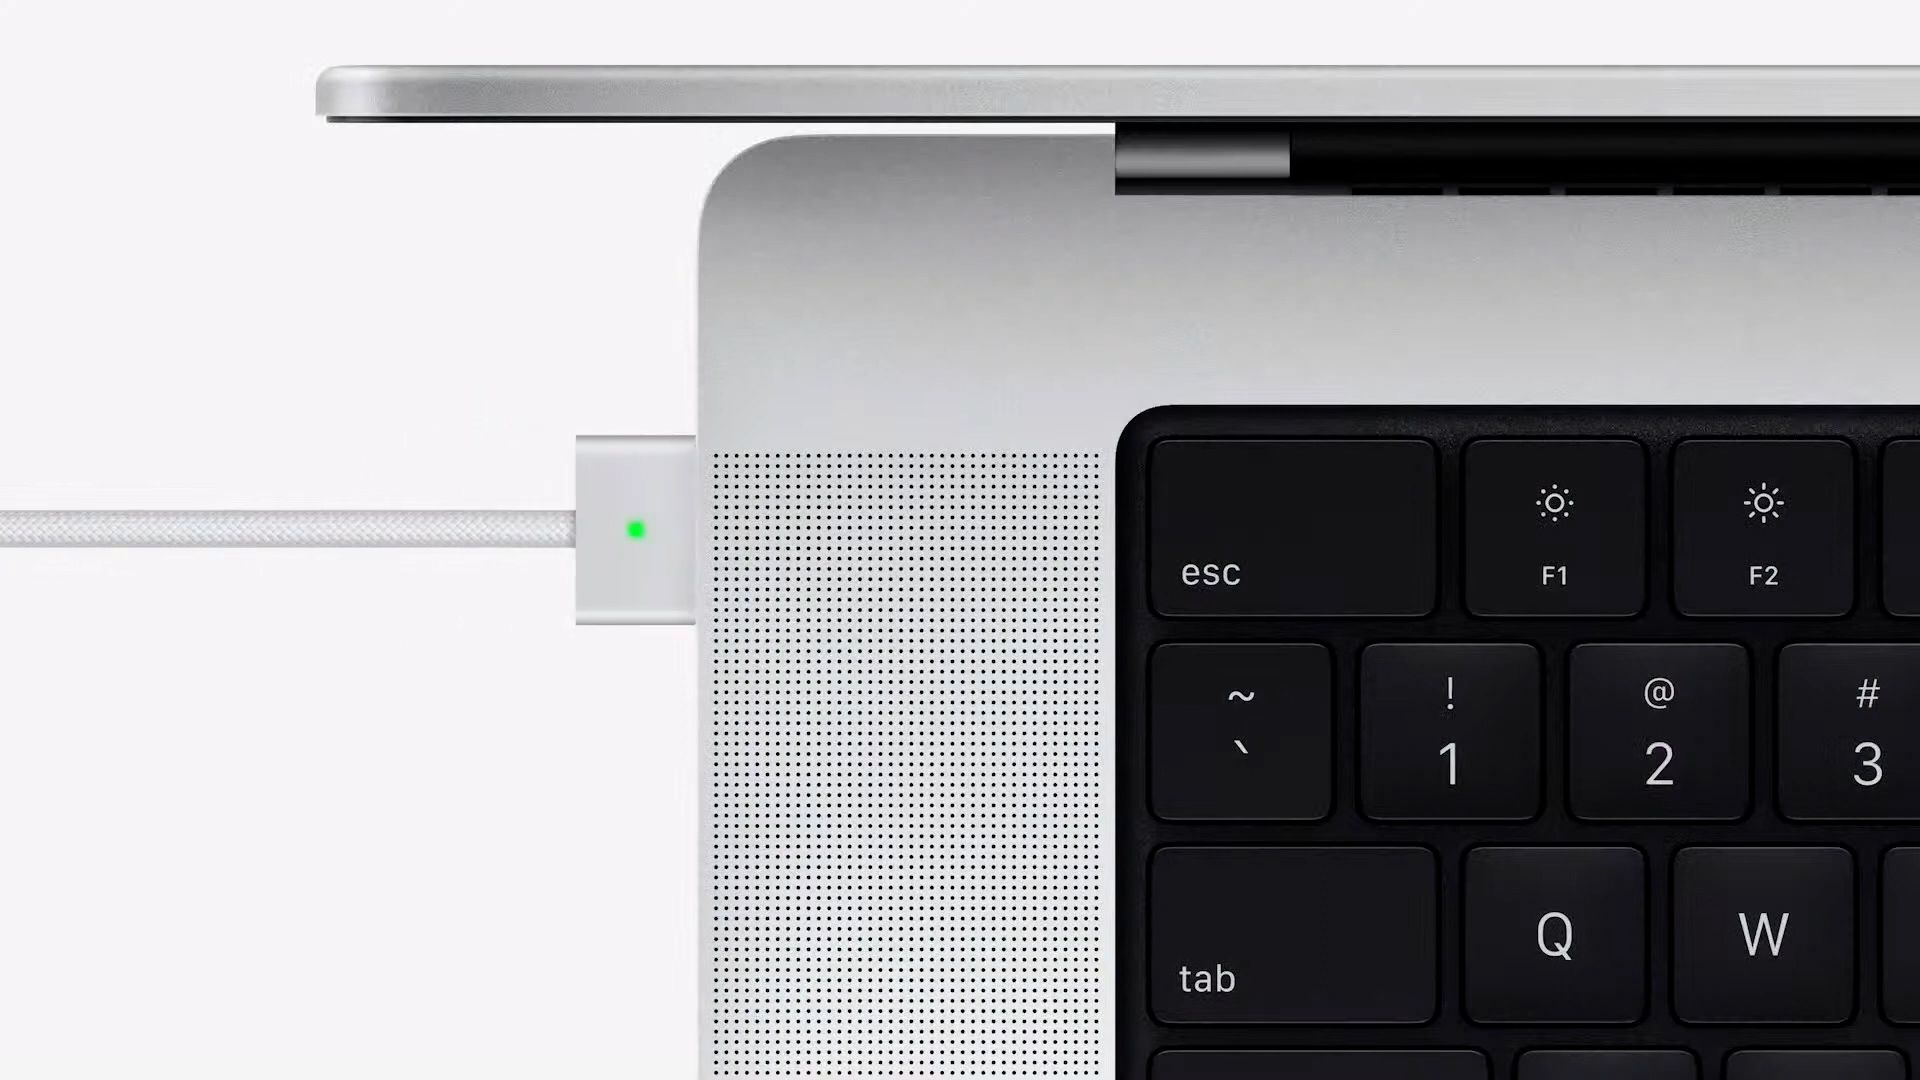 Video: Apple's new MacBook Pro lineup adds new M1 chips, brings back MagSafe charging